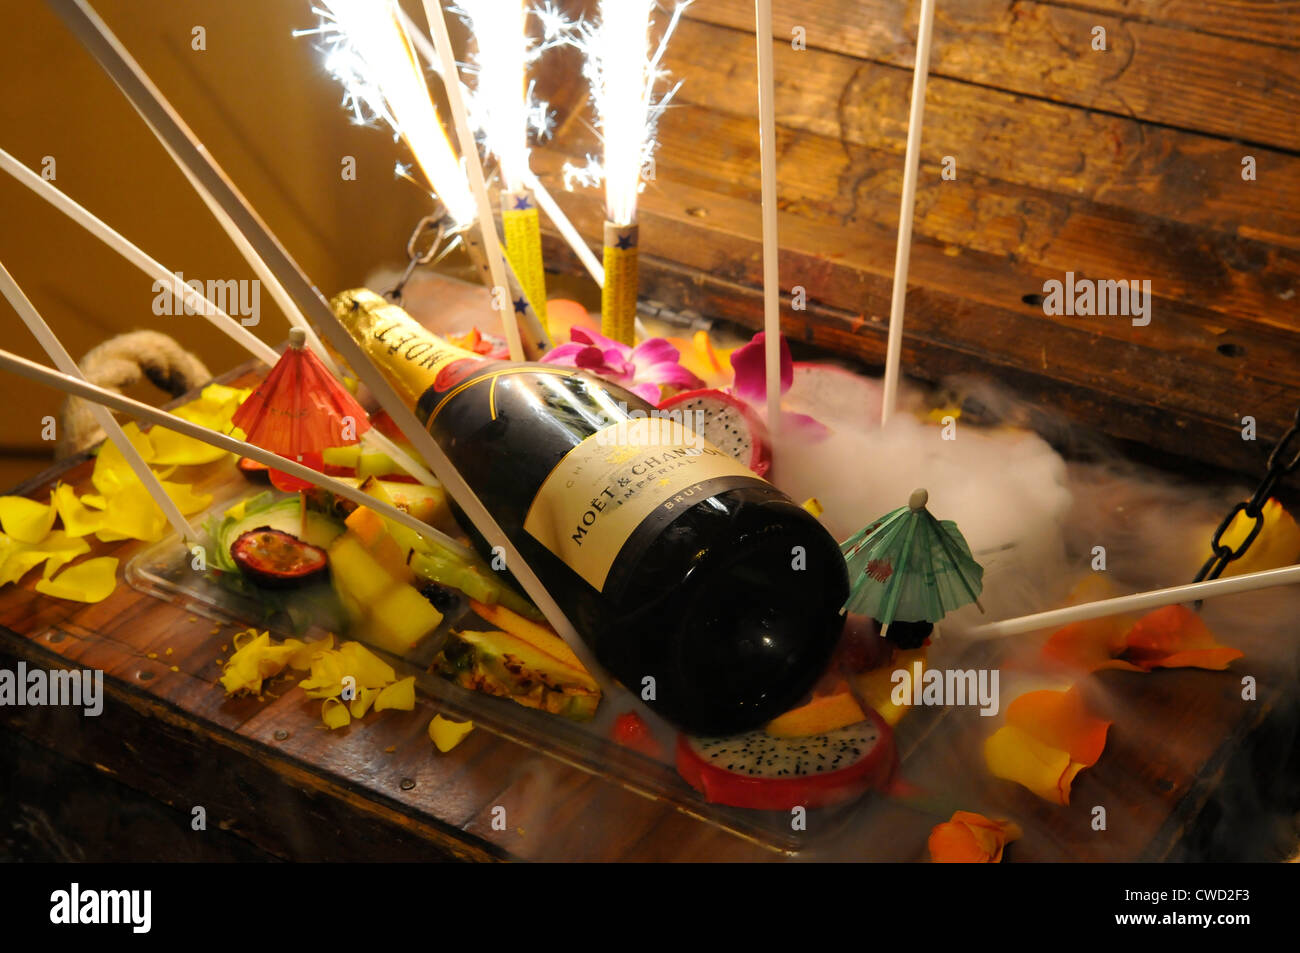 Treasure Chest Cocktail at Mahiki bar, Mayfair, London - Stock Image